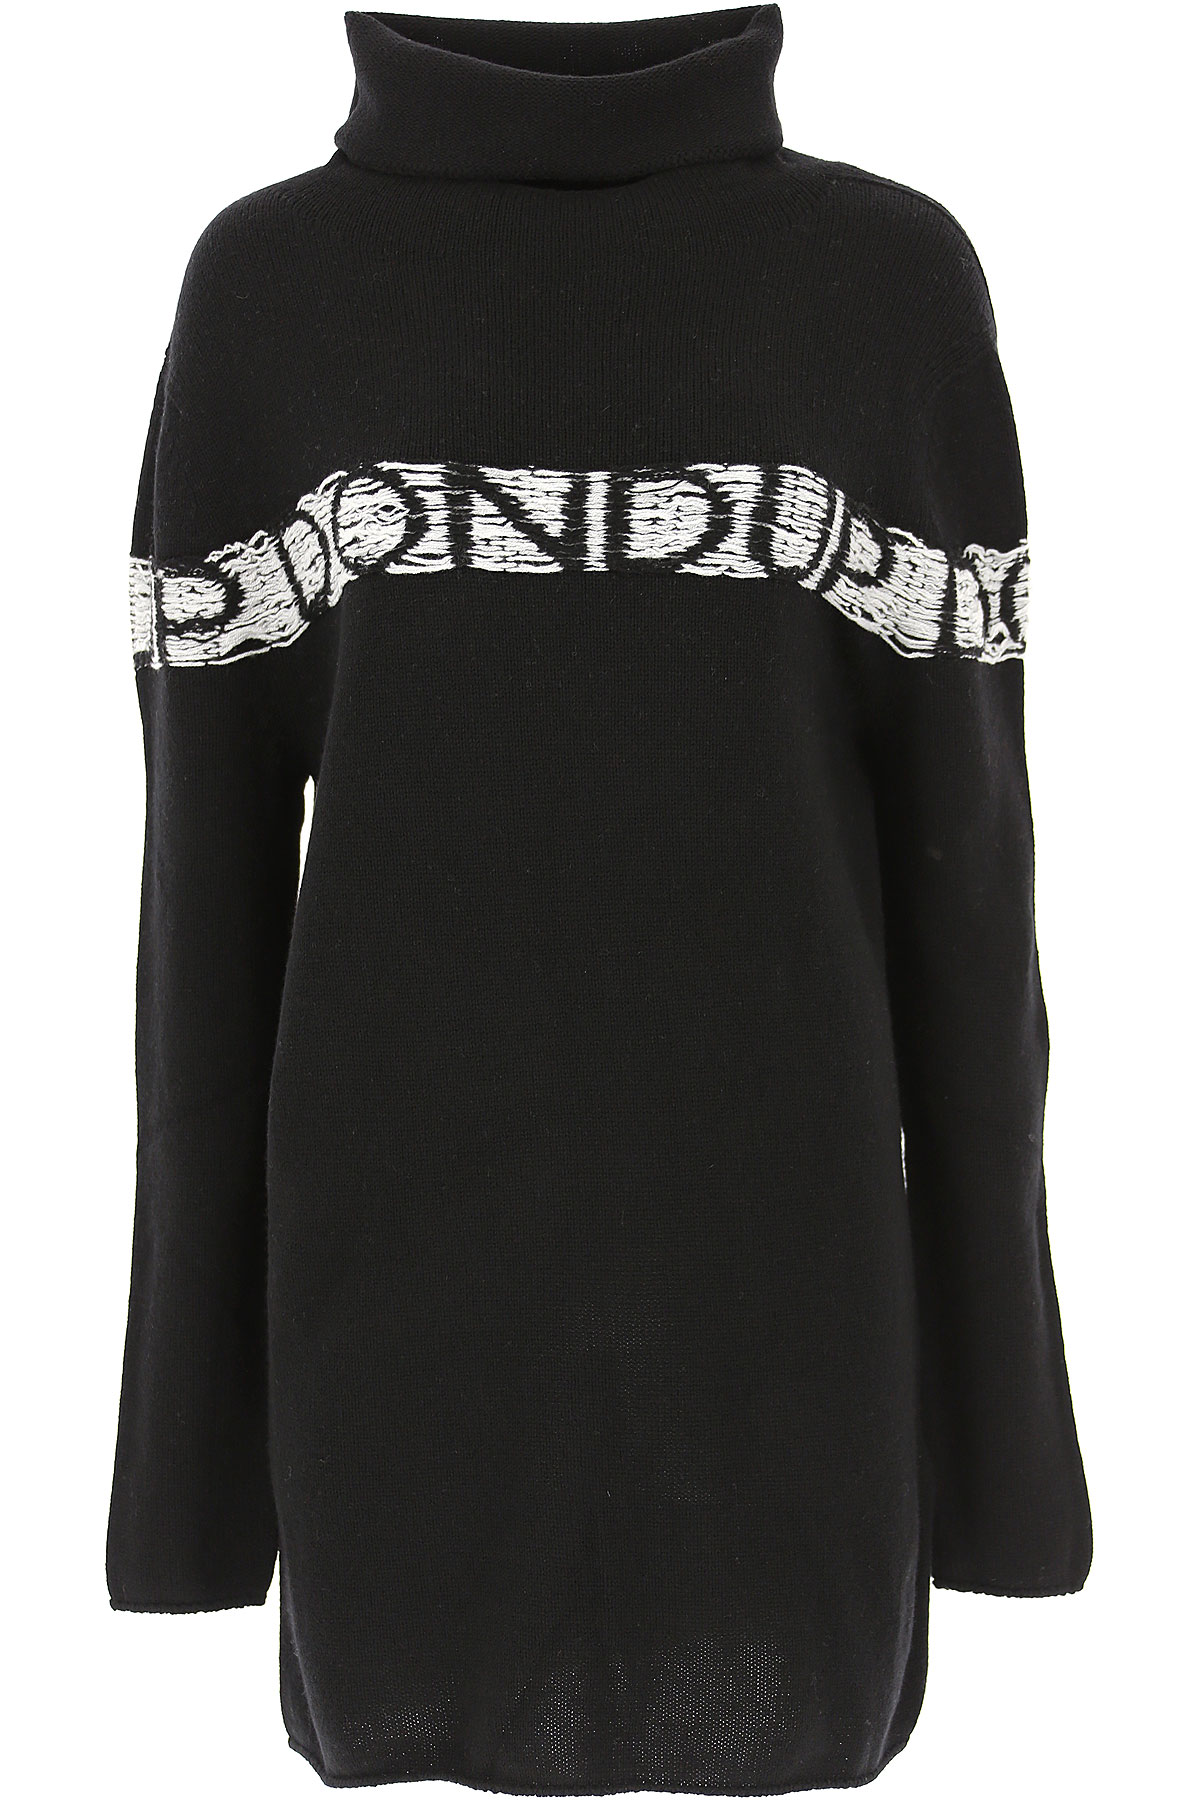 Dondup Dress for Women, Evening Cocktail Party On Sale, Black, Wool, 2019, 4 6